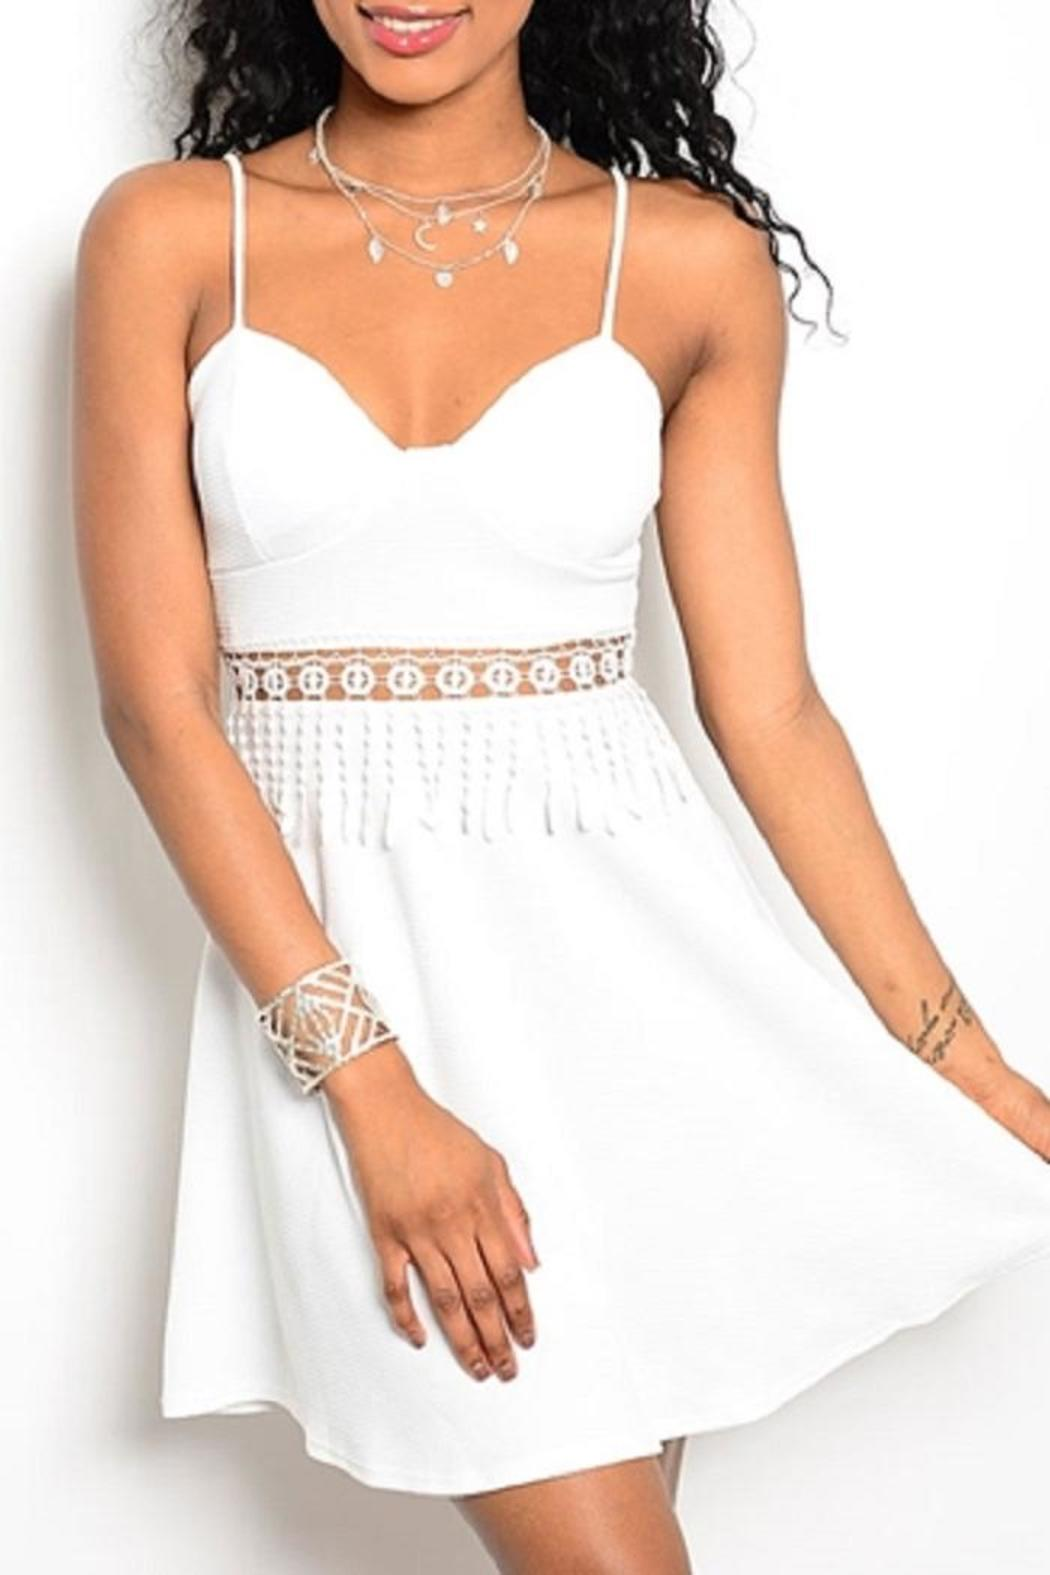 Adore Clothes & More White Fringe Dress - Main Image